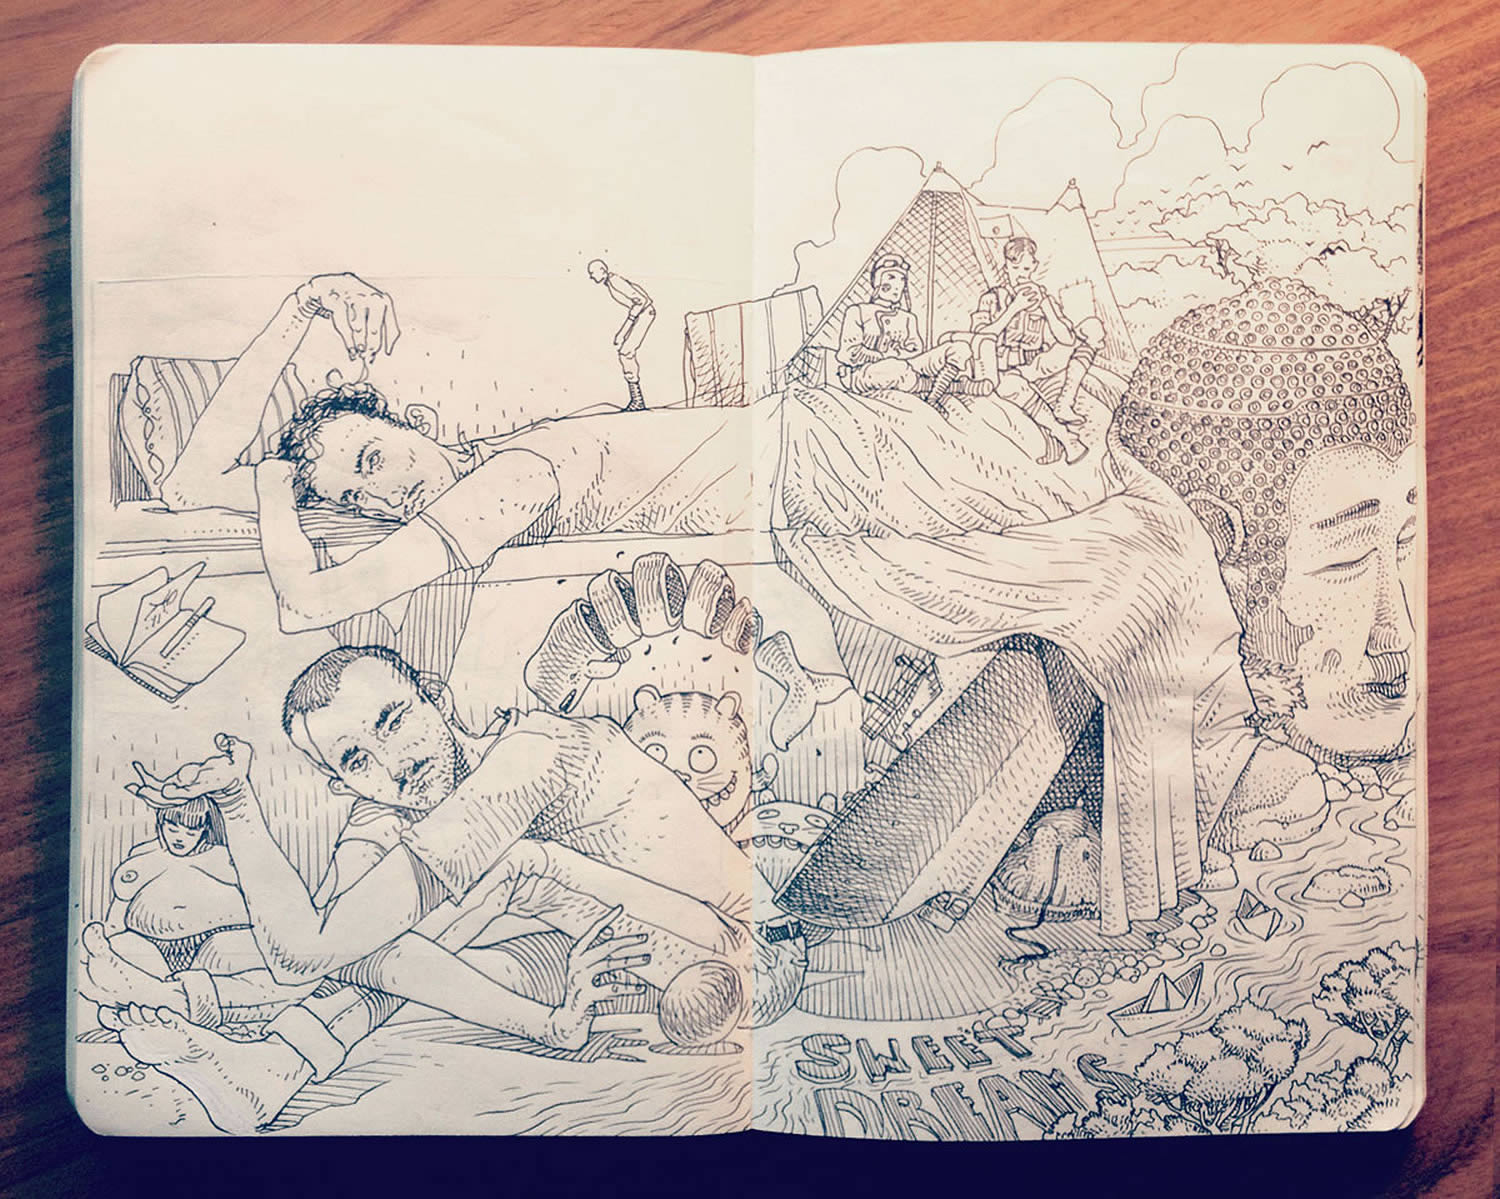 confused guy, lying, sitting, sketchbook drawing by Jared Muralt